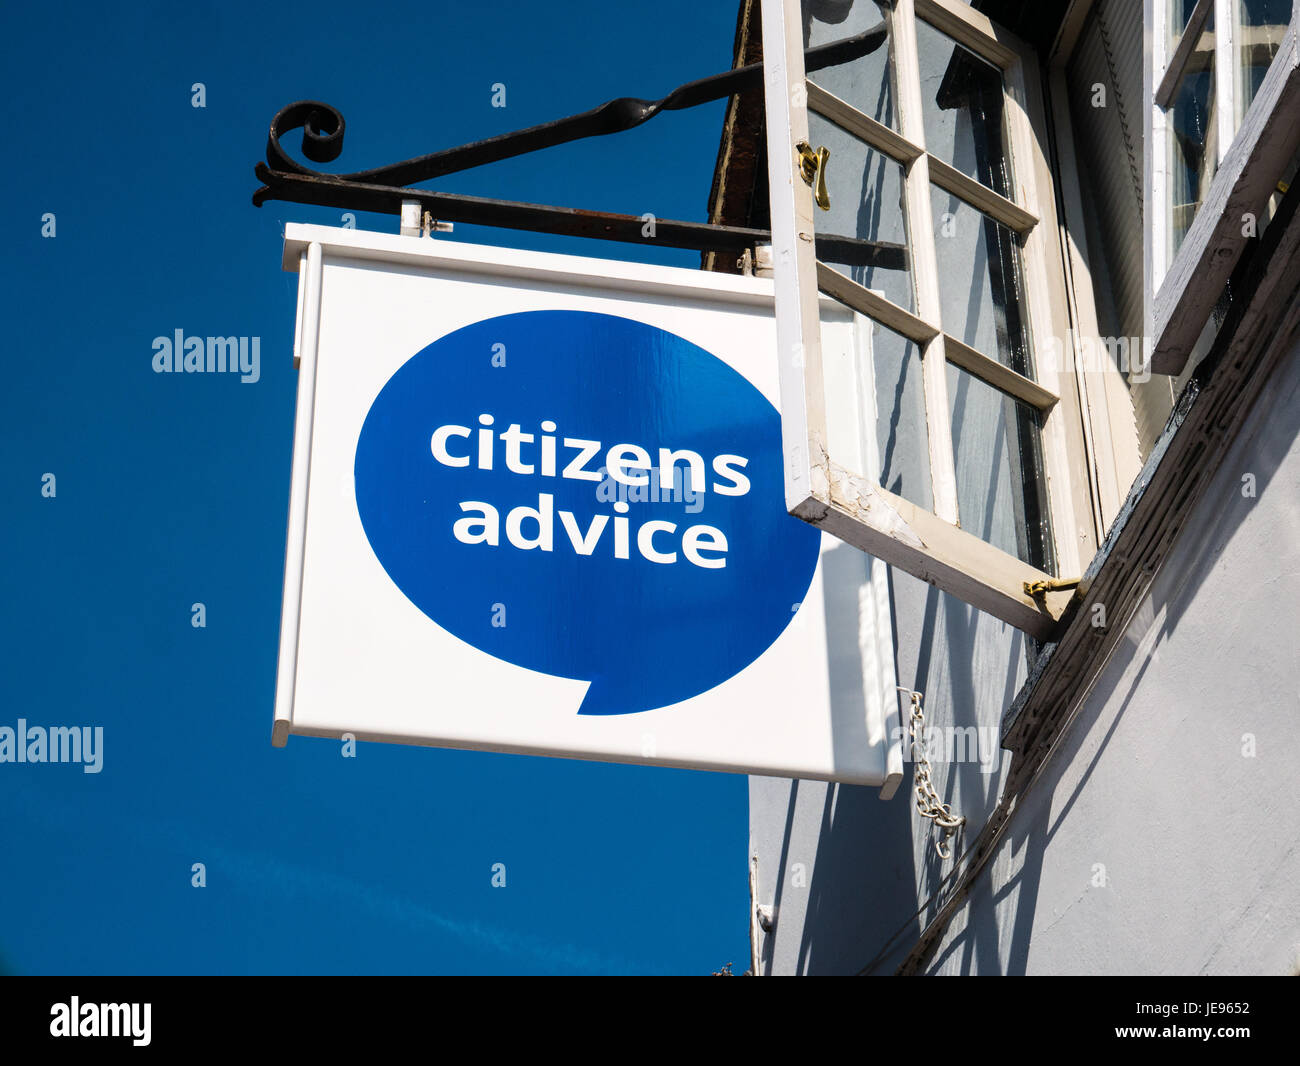 Citizens Advice, Henley-on-Thames, Oxfordshire, England - Stock Image